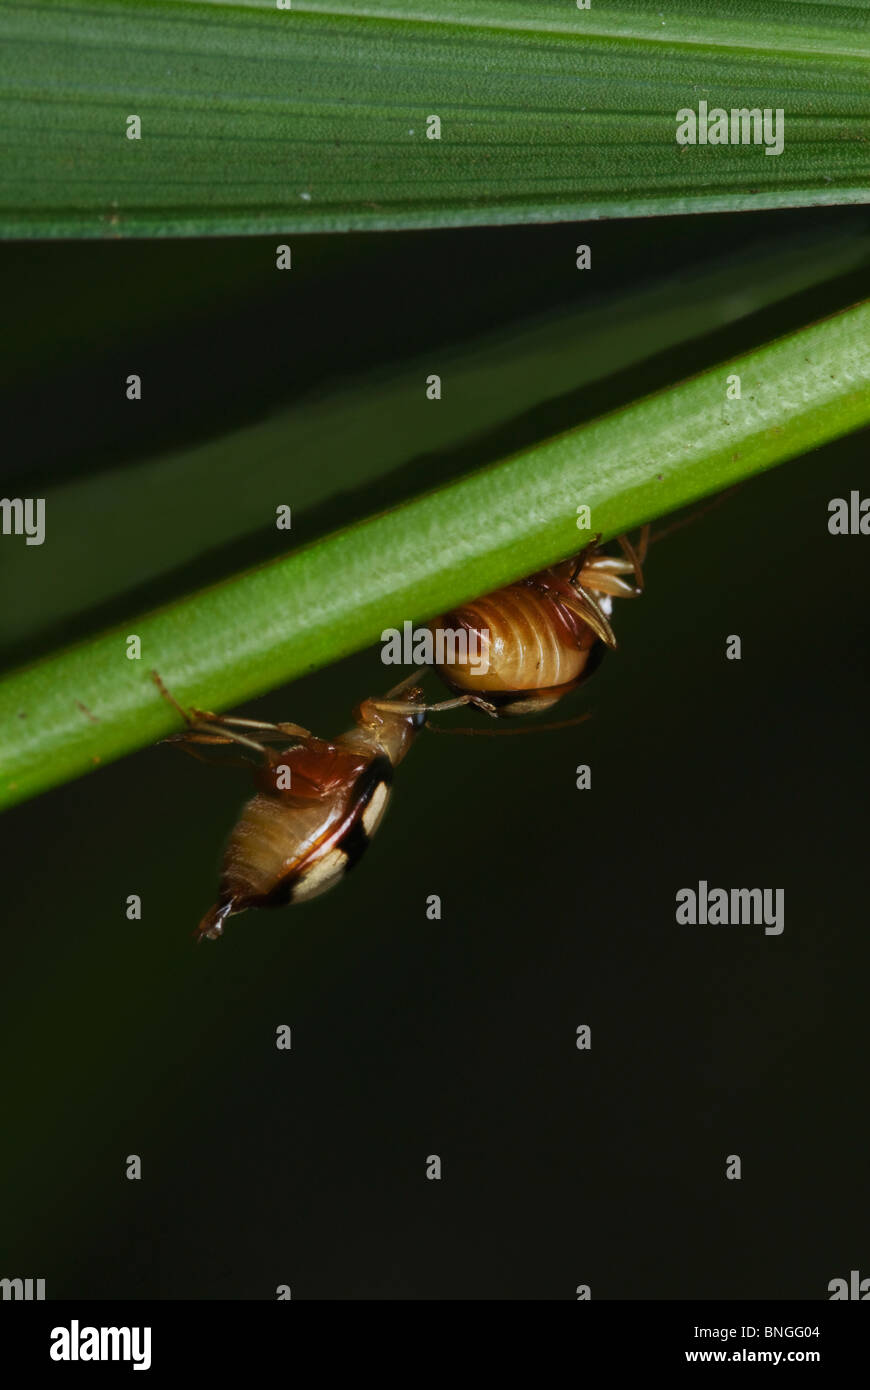 Low Angle View of Small-Eyed Leaf Beetle crawling up a diagonal leaf. Pongola, Kwazulu Natal, South Africa - Stock Image